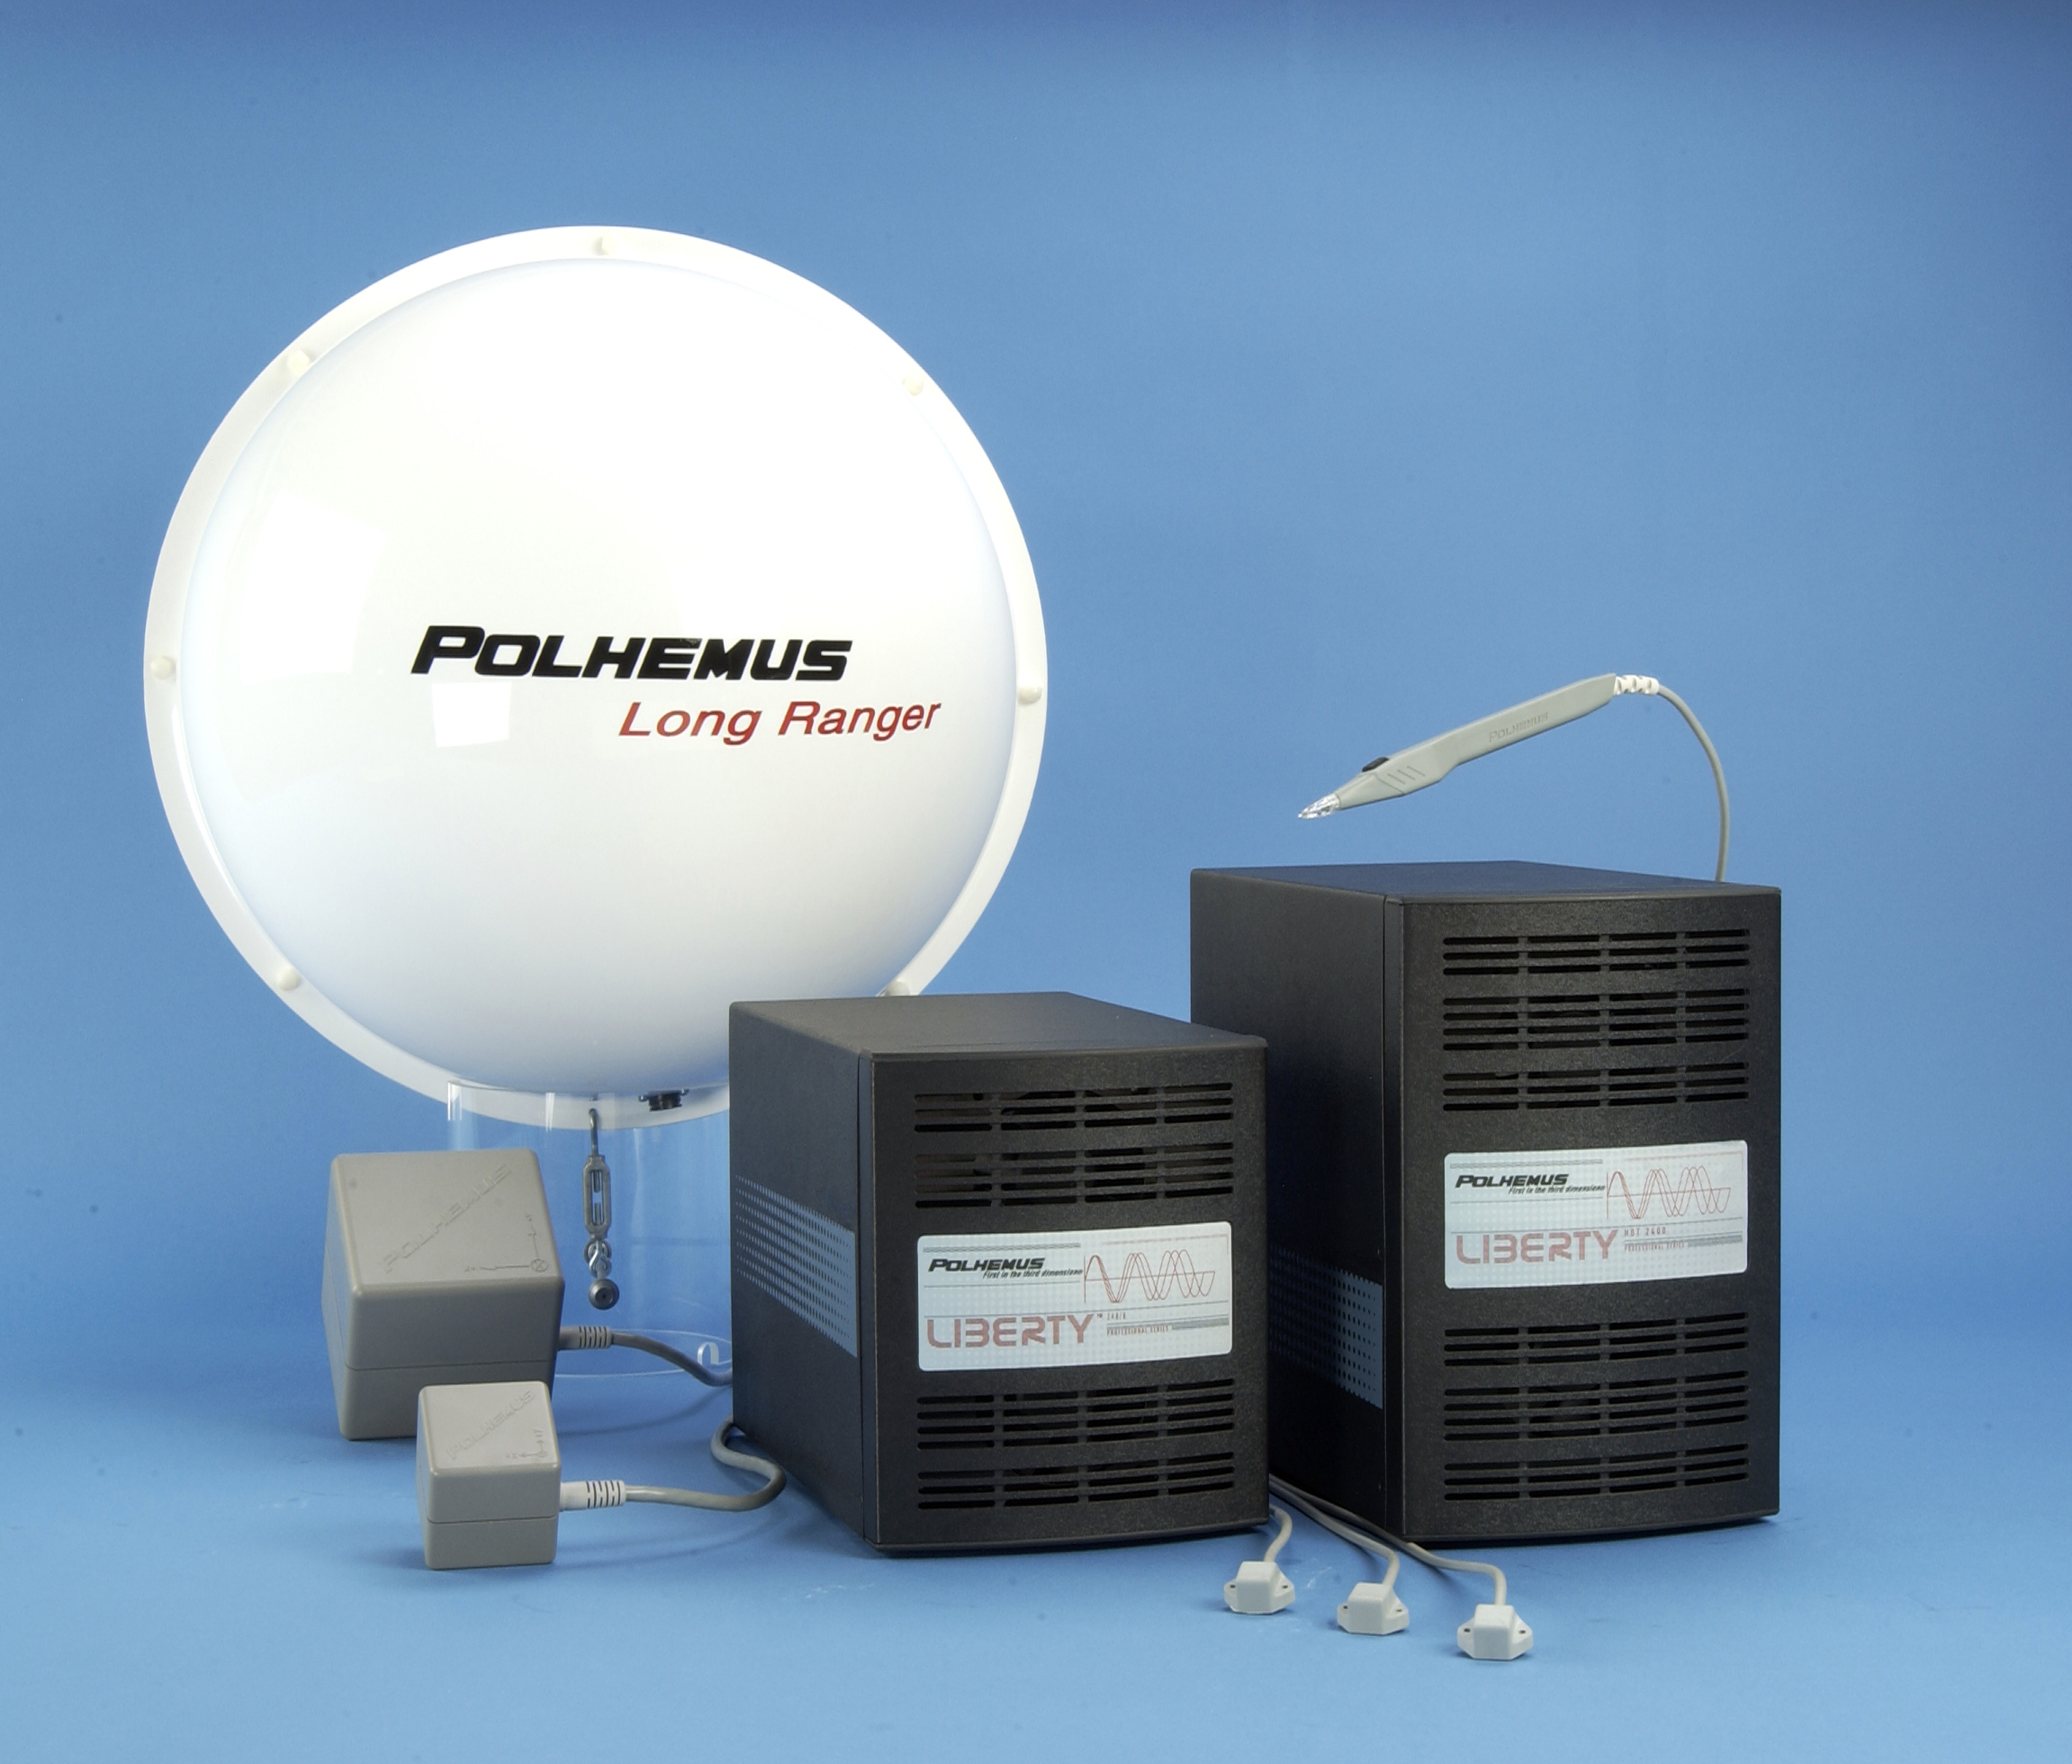 Polhemus motion tracking products: FASTRAK and LIBERTY